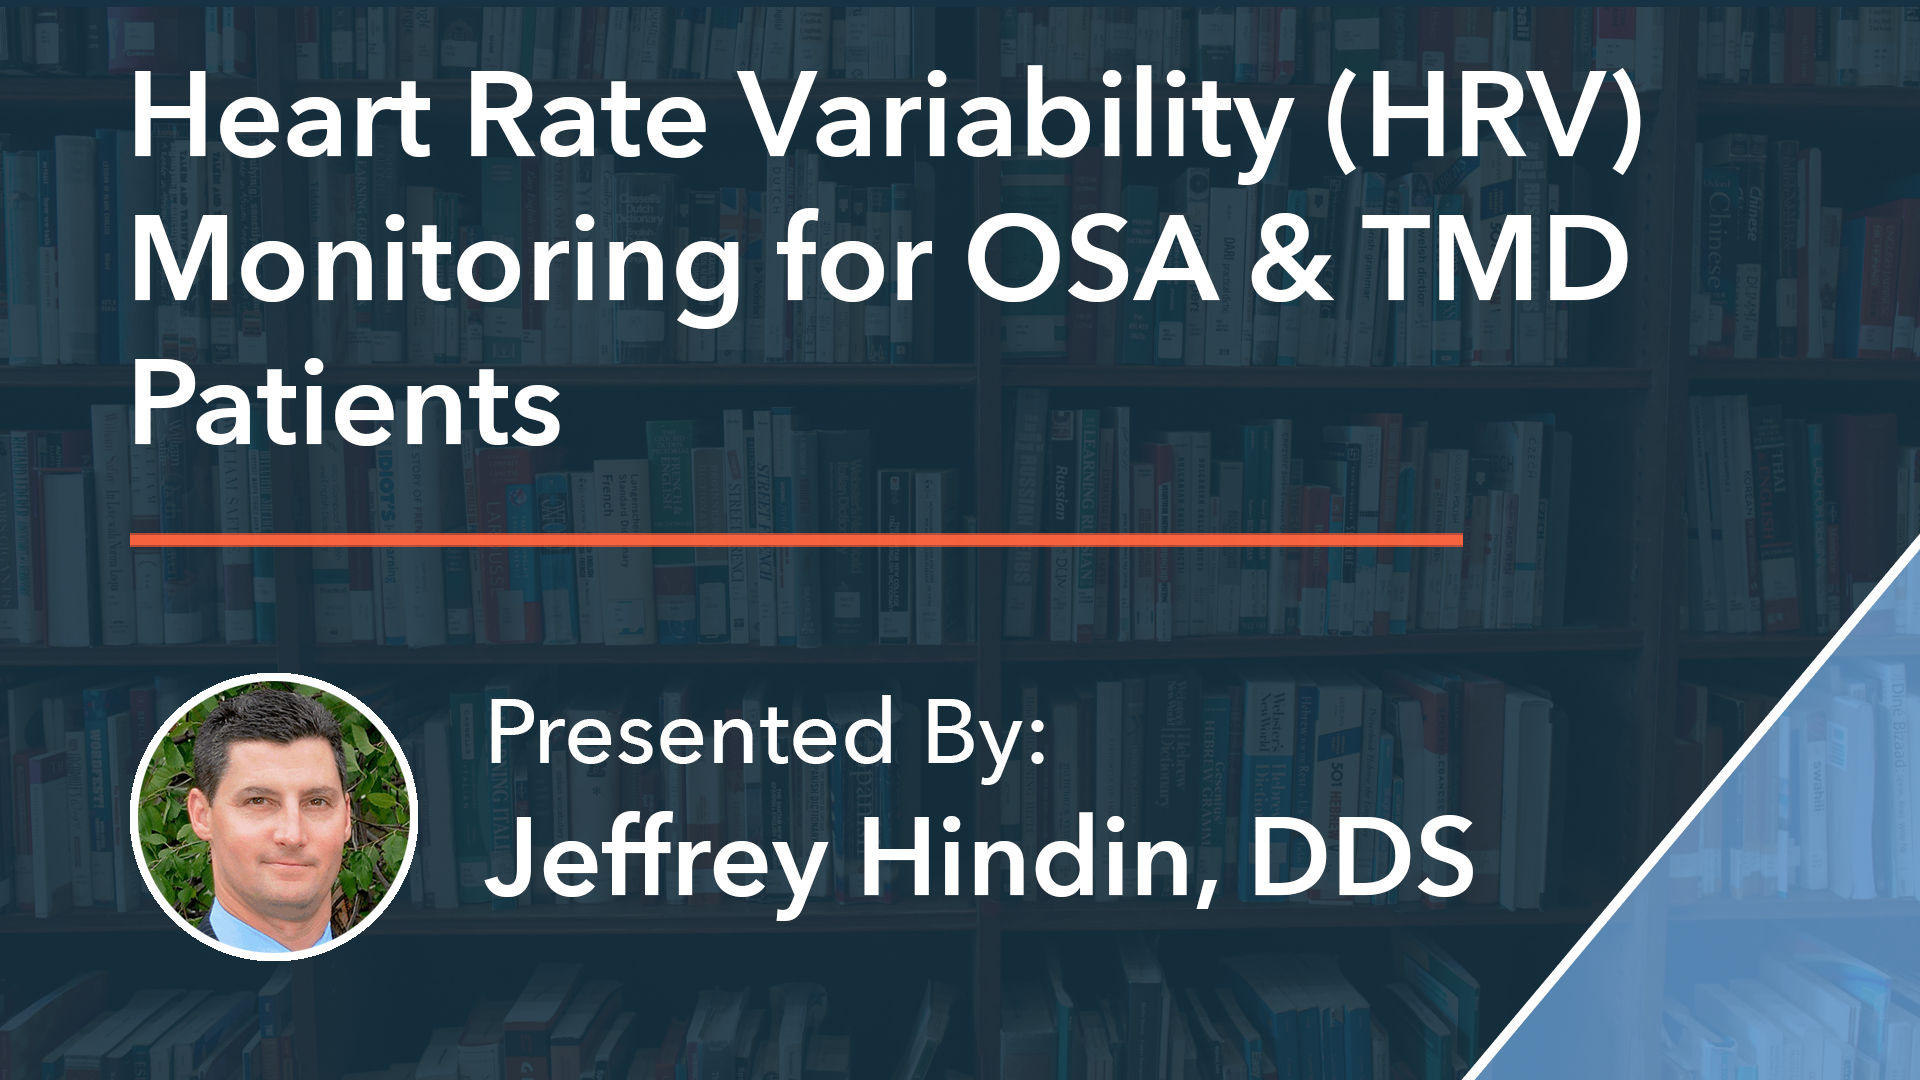 Heart Rate Variability (HRV) Monitoring for OSA & TMD Patients DR Jeffrey Hindin